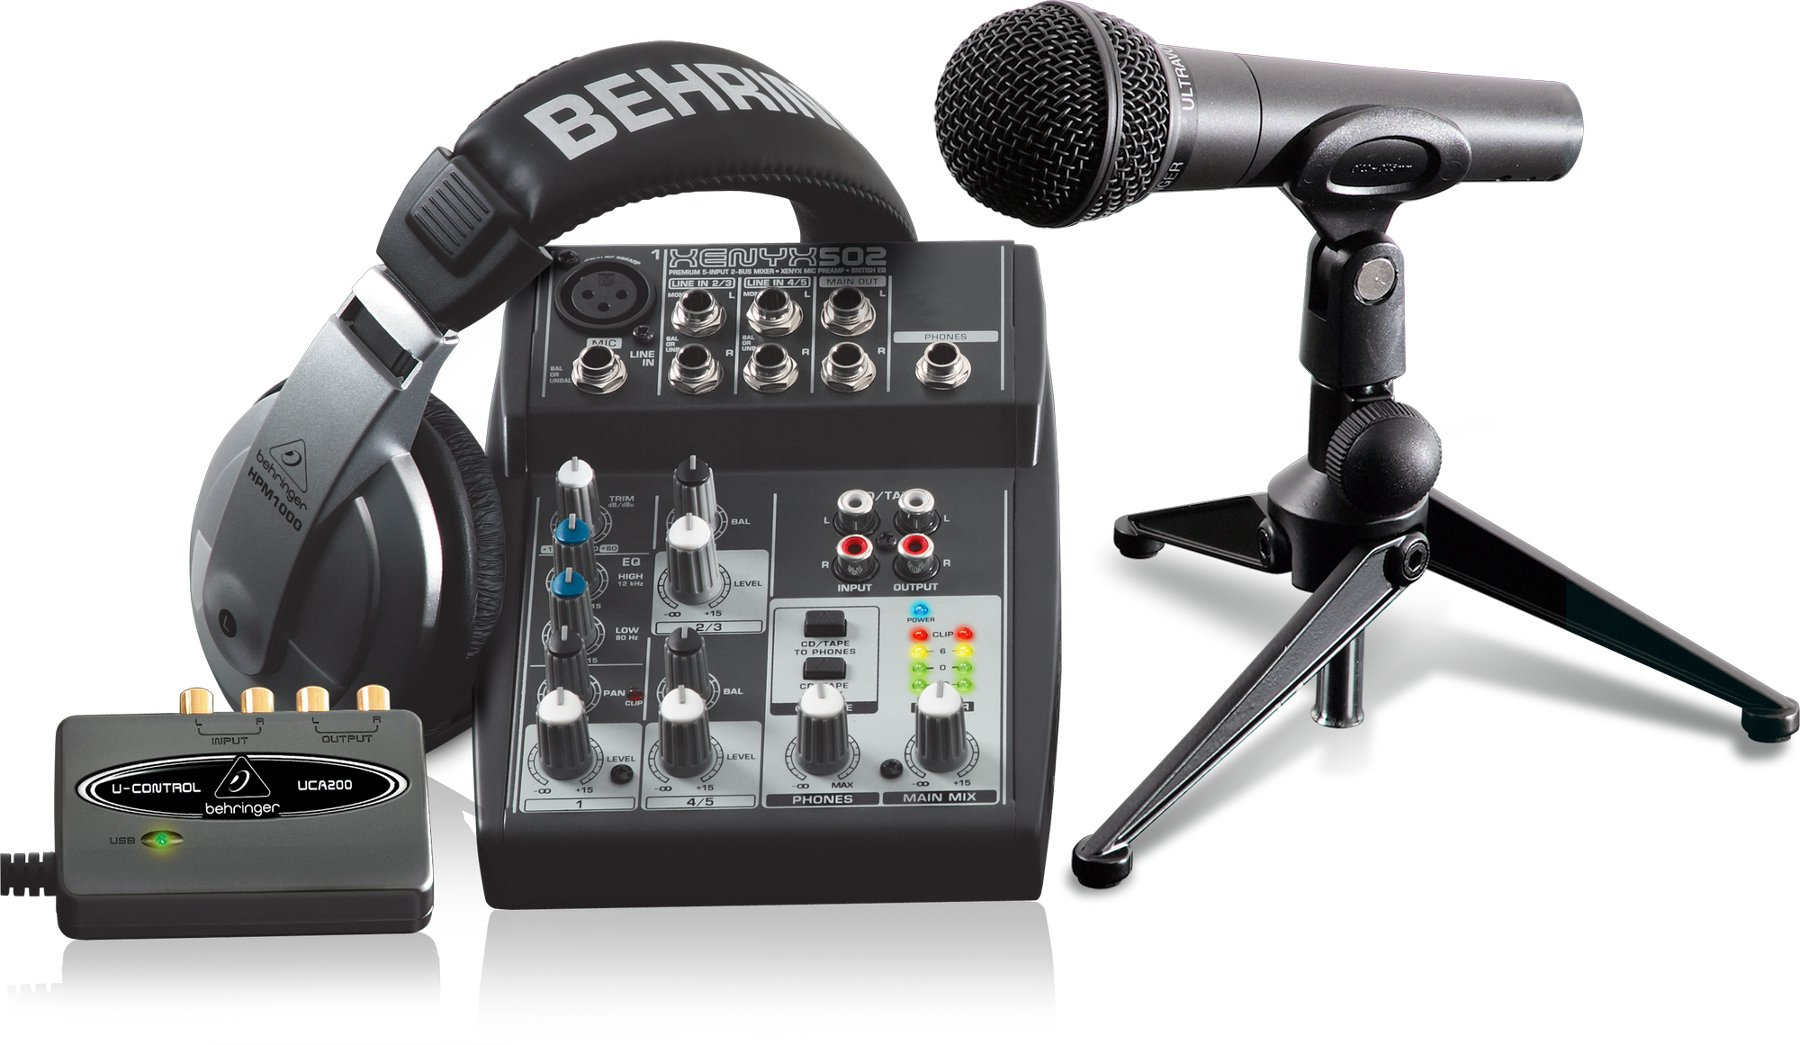 Podcasting Bundle with USB Audio Interface, Mixer, Microphone and Headphones